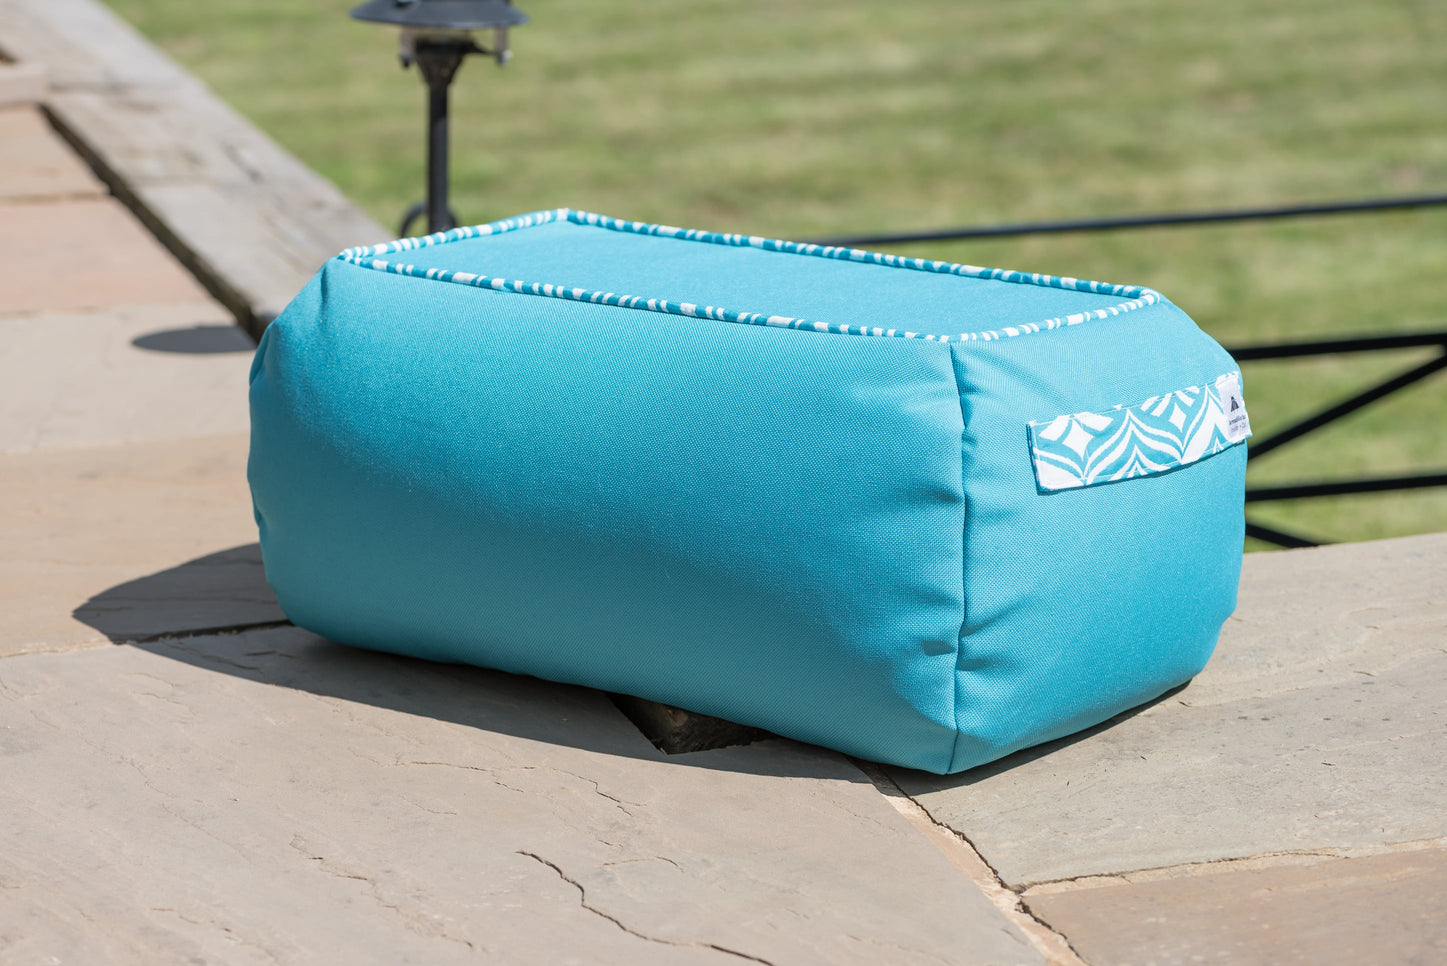 Bean Bag Table in Turquoise Blue Bean Bag Table armadillosun